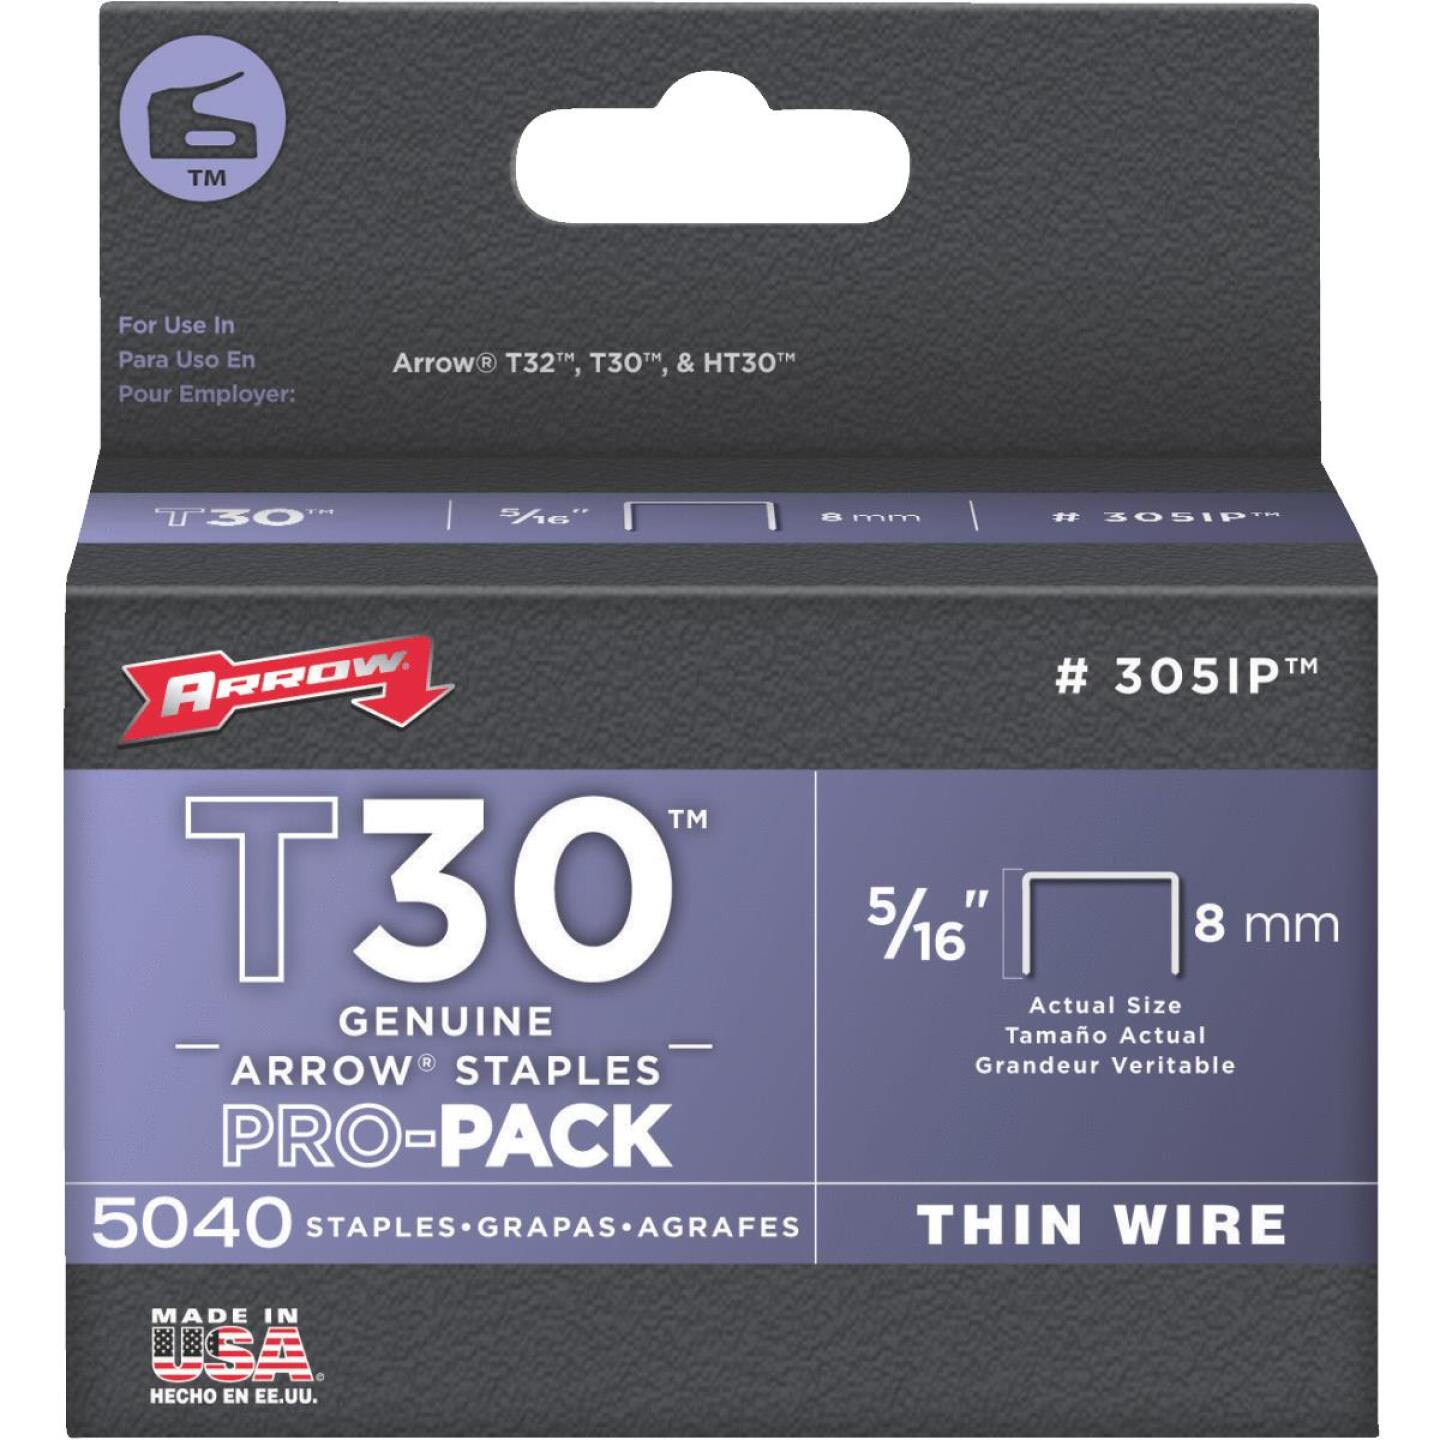 Arrow T30 Pro-Pack Thin Wire Staple, 5/16 In. (5040-Pack) Image 1